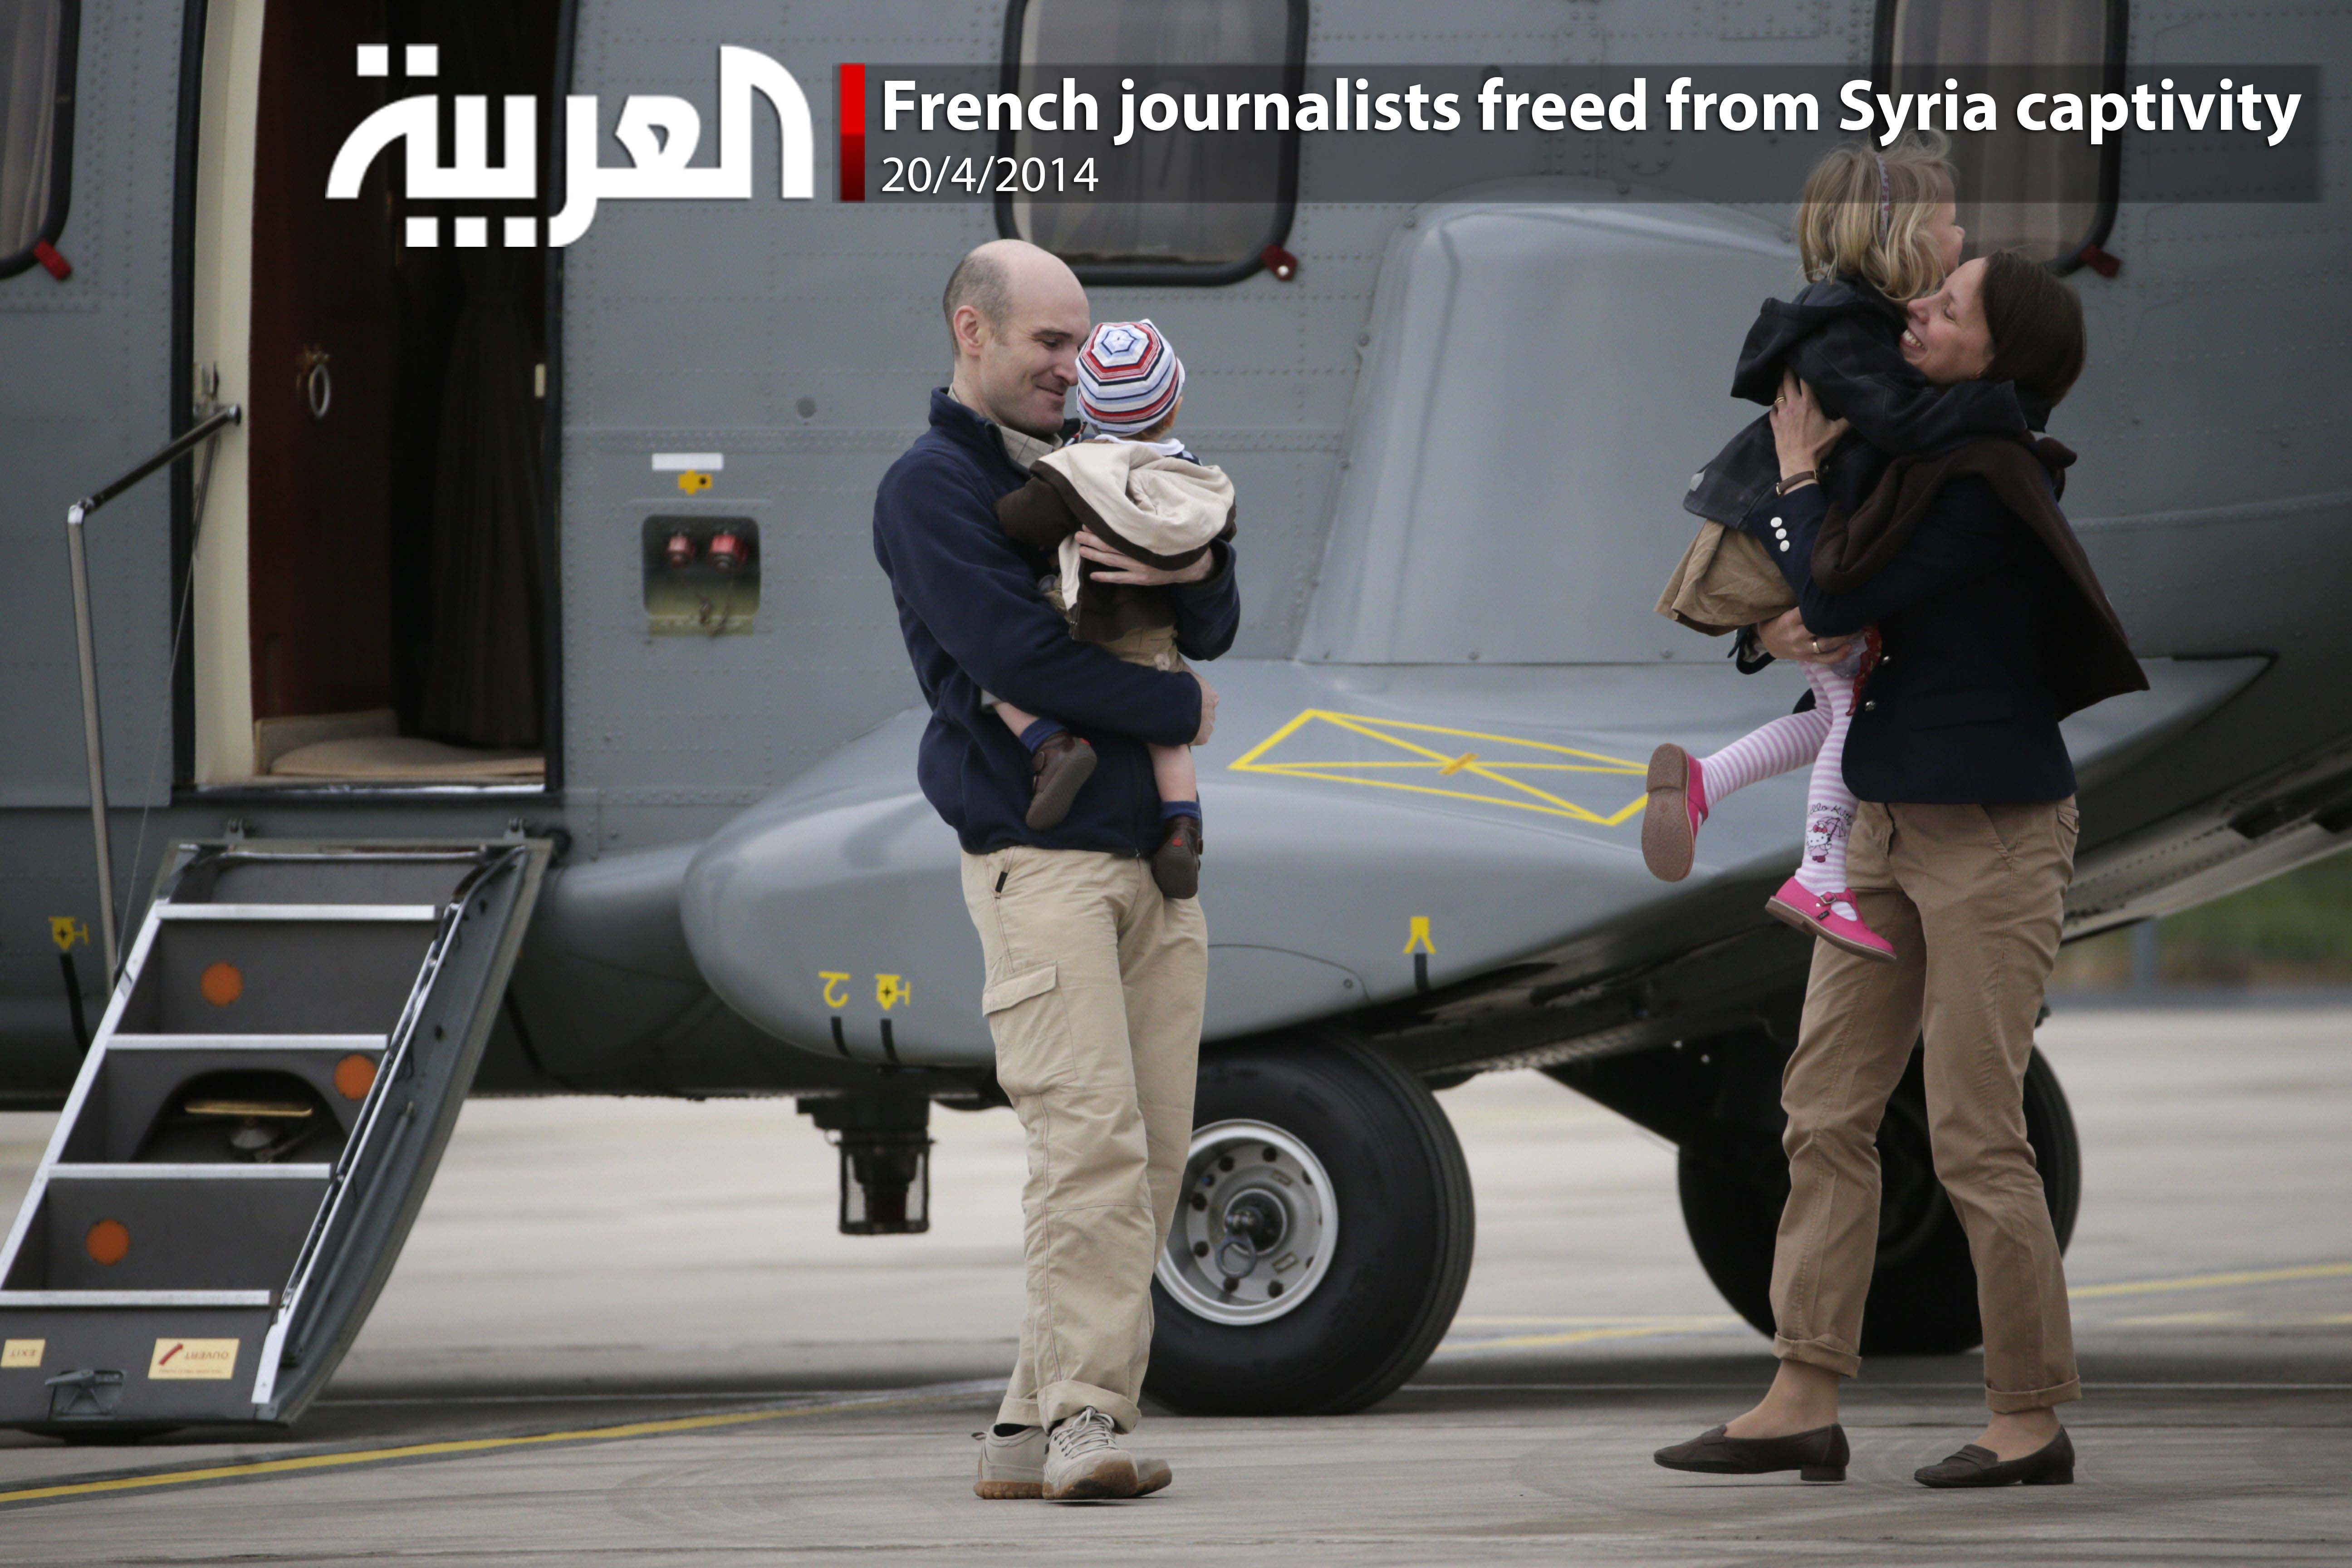 French journalists freed from Syria captivity